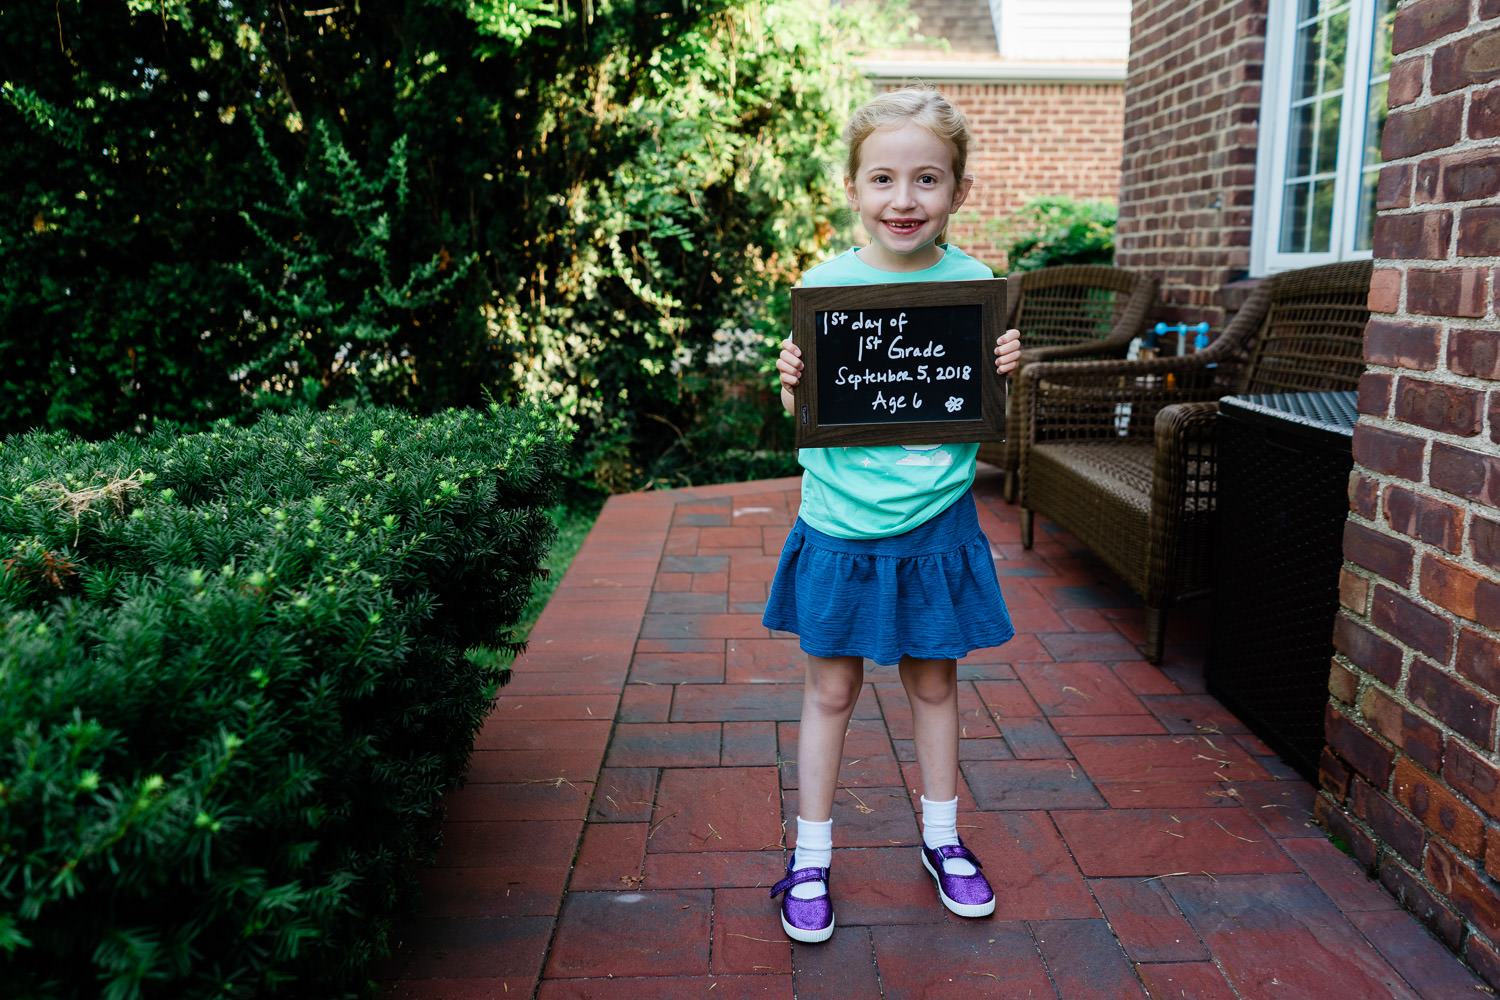 A little girl poses with a sign on the first day of 1st grade.